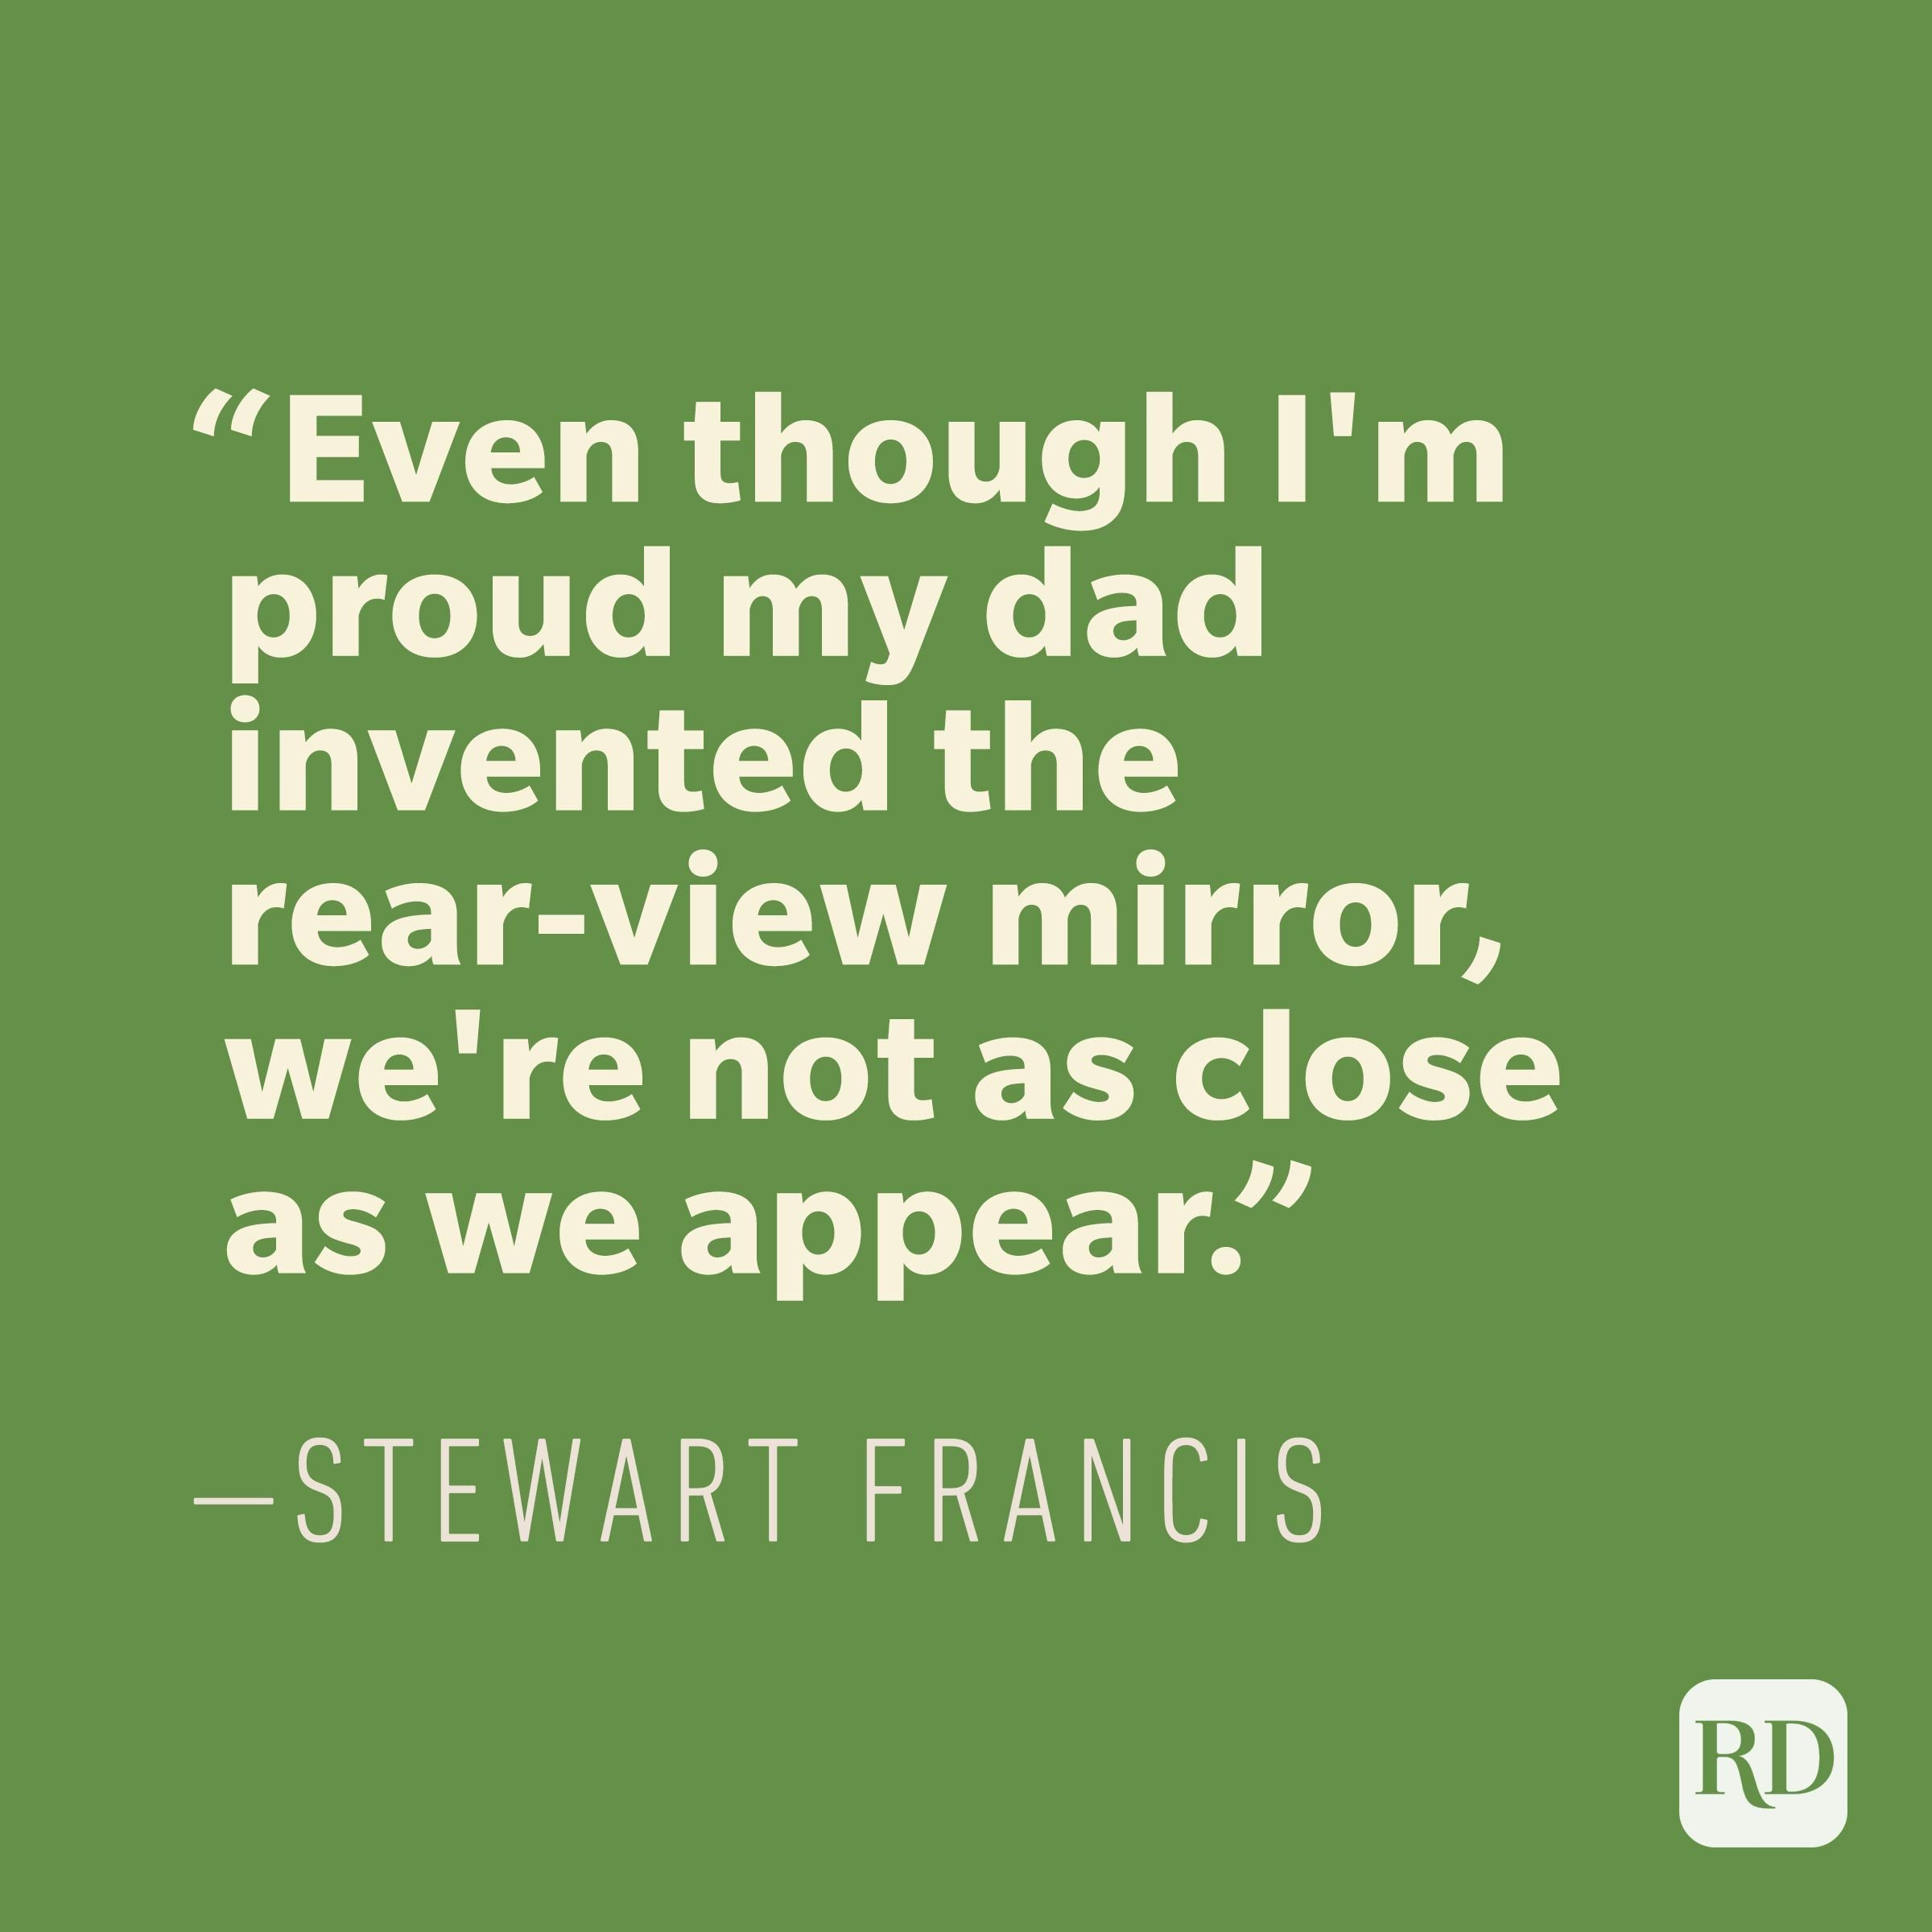 """Even though I'm proud my dad invented the rear-view mirror, we're not as close as we appear."" —STEWART FRANCIS"